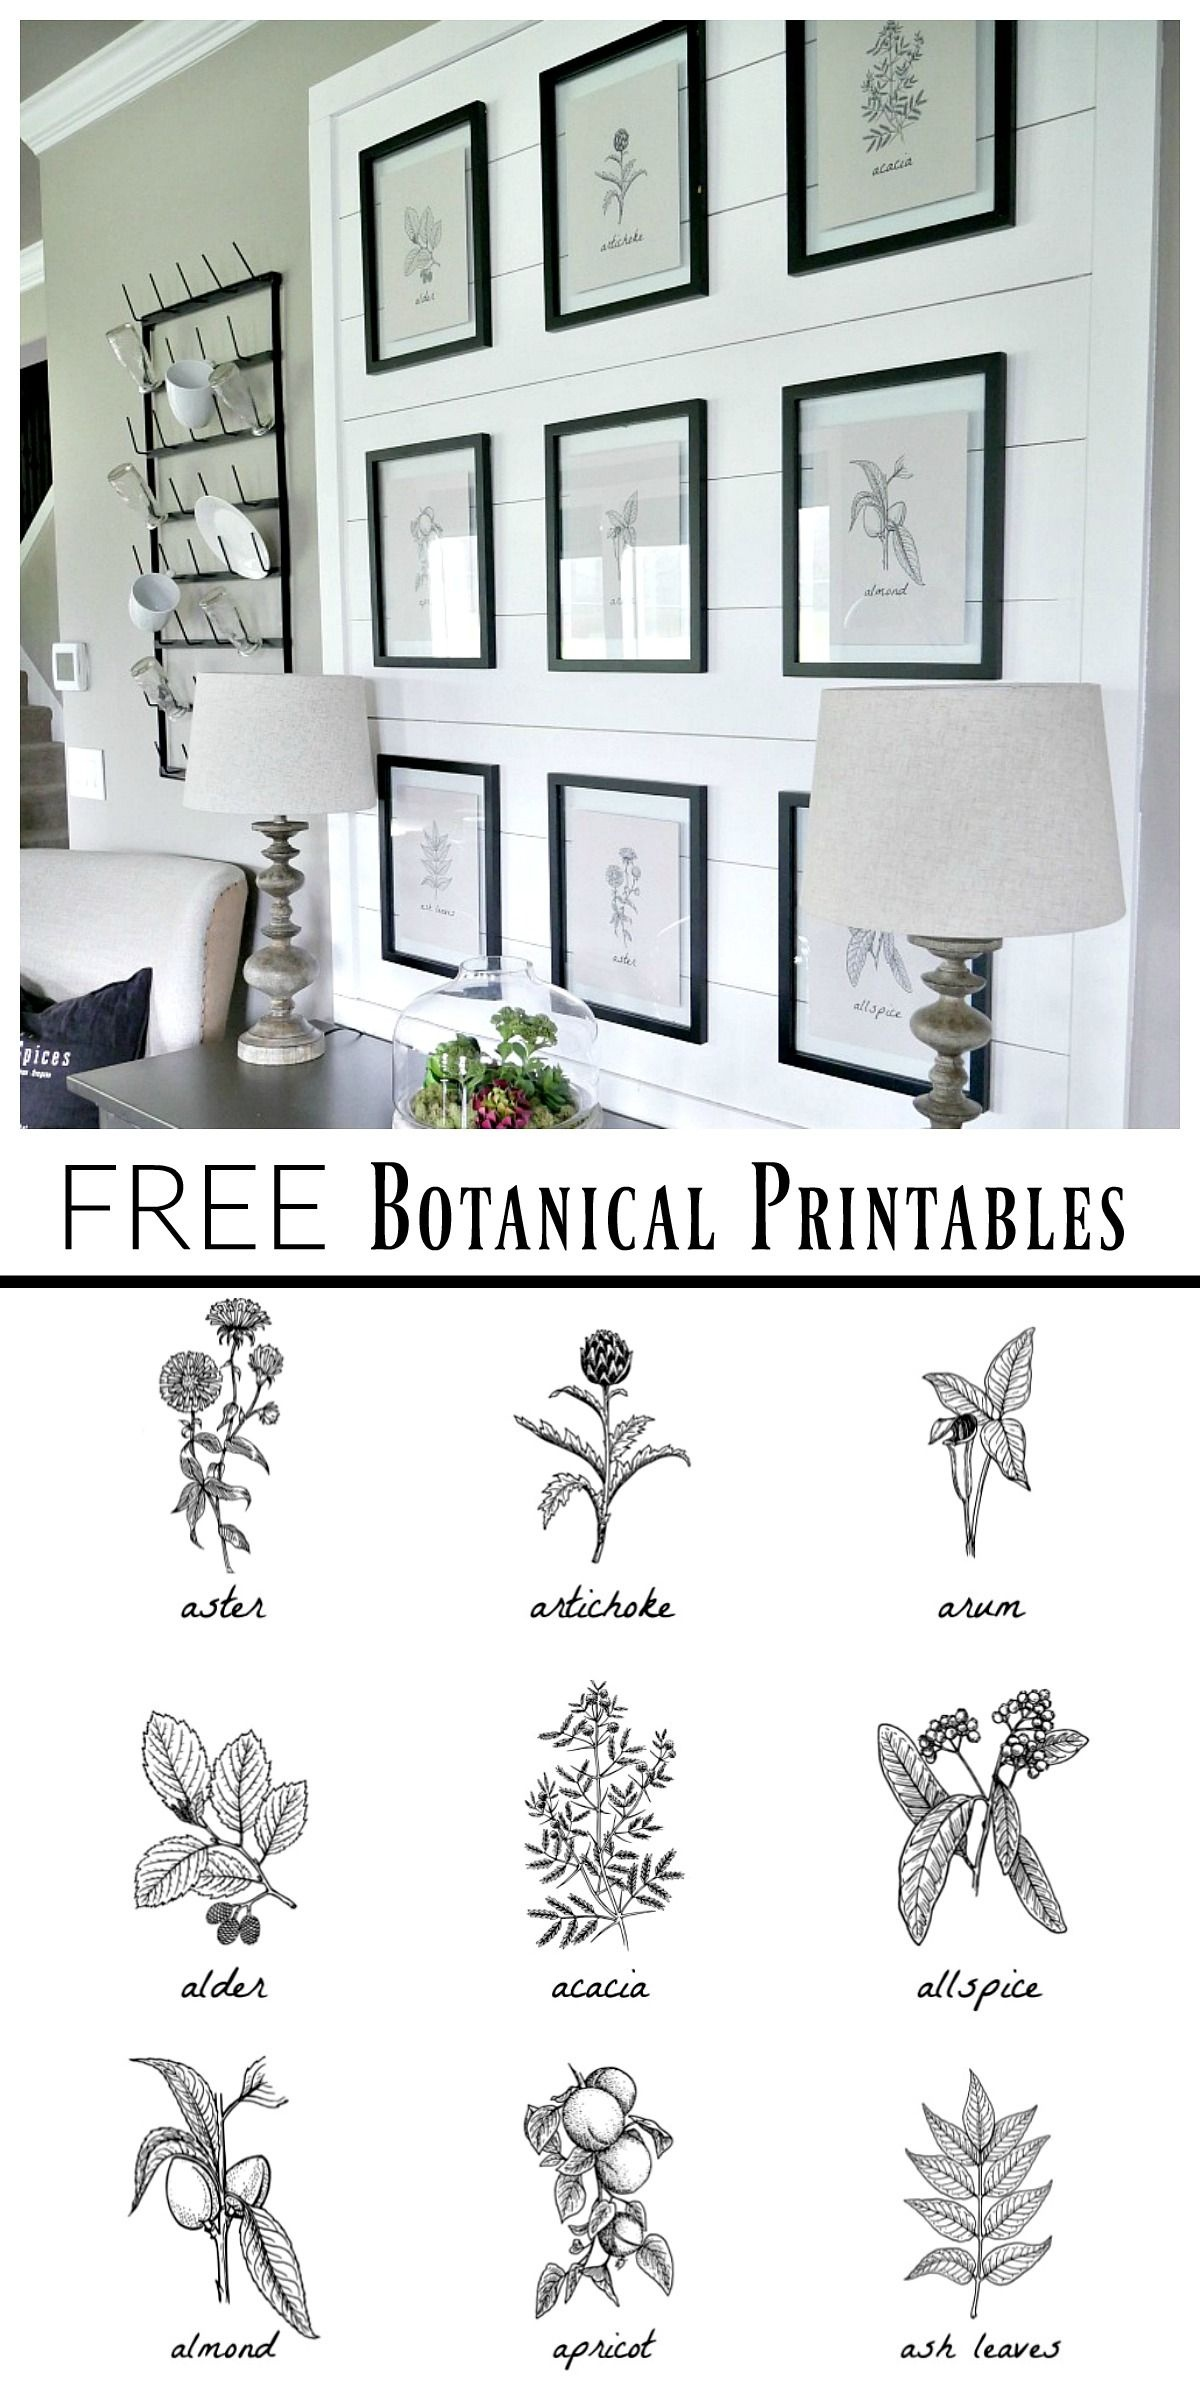 Free Botanical Prints | Bloggers' Best Diy Ideas | Diy Home Decor - Free Black And White Printable Art